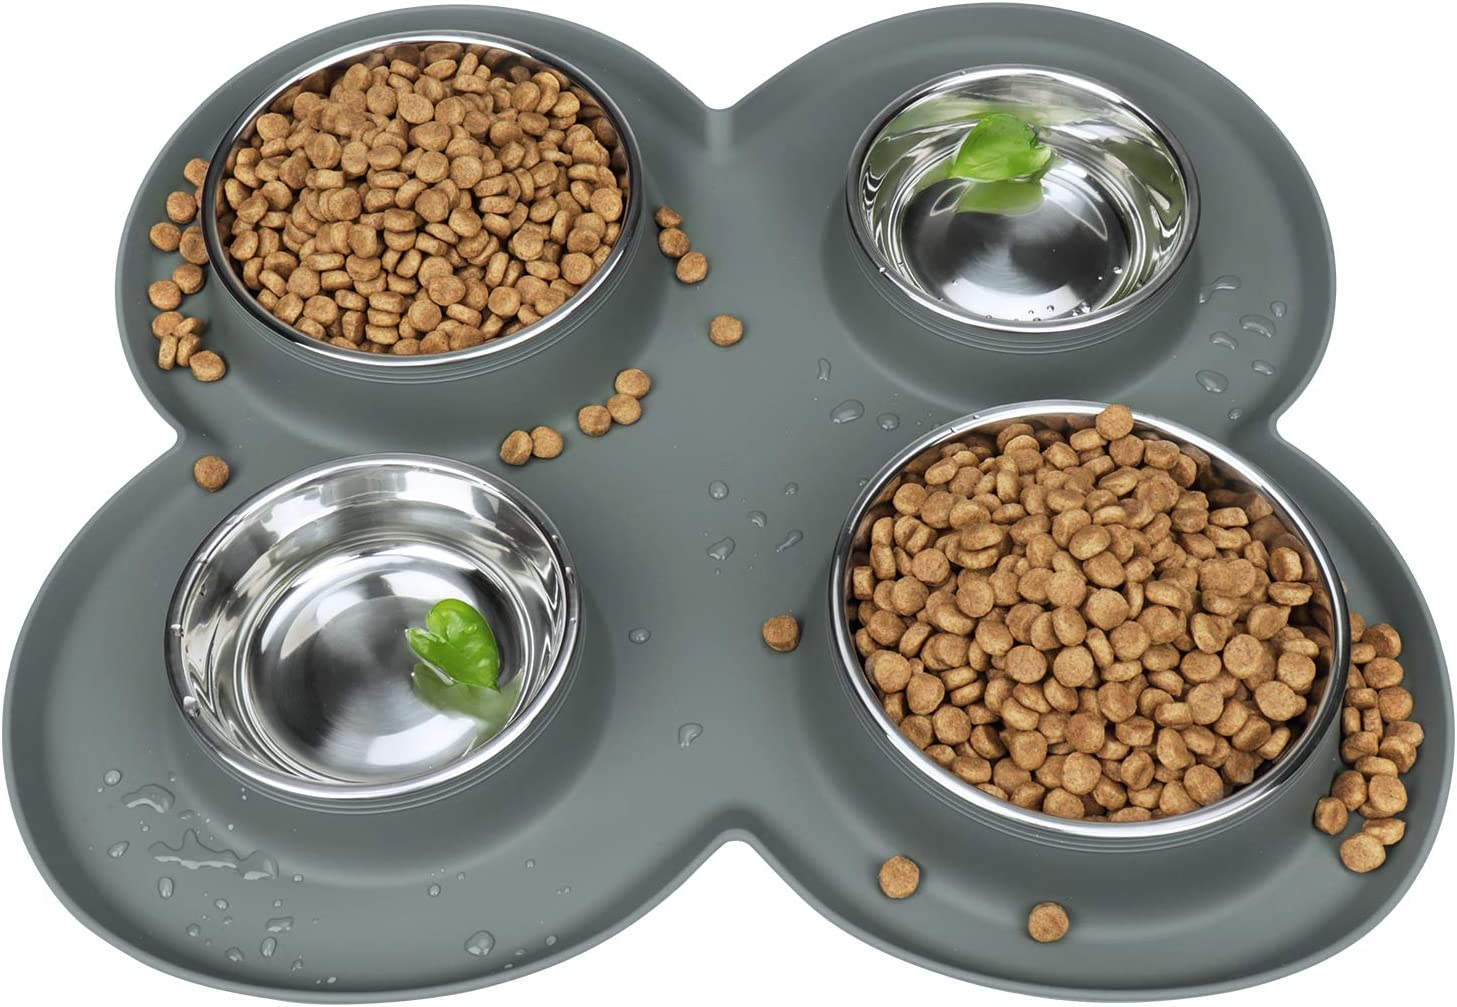 WINSEE 4 Litter Dogs Cats Bowls Feeder Stainless Steel with Safety Silicone Mat Set for Small Medium Dogs, No Spill Non Skid, Food & Water Bowls for Multiple Pets Grey, 80 Oz